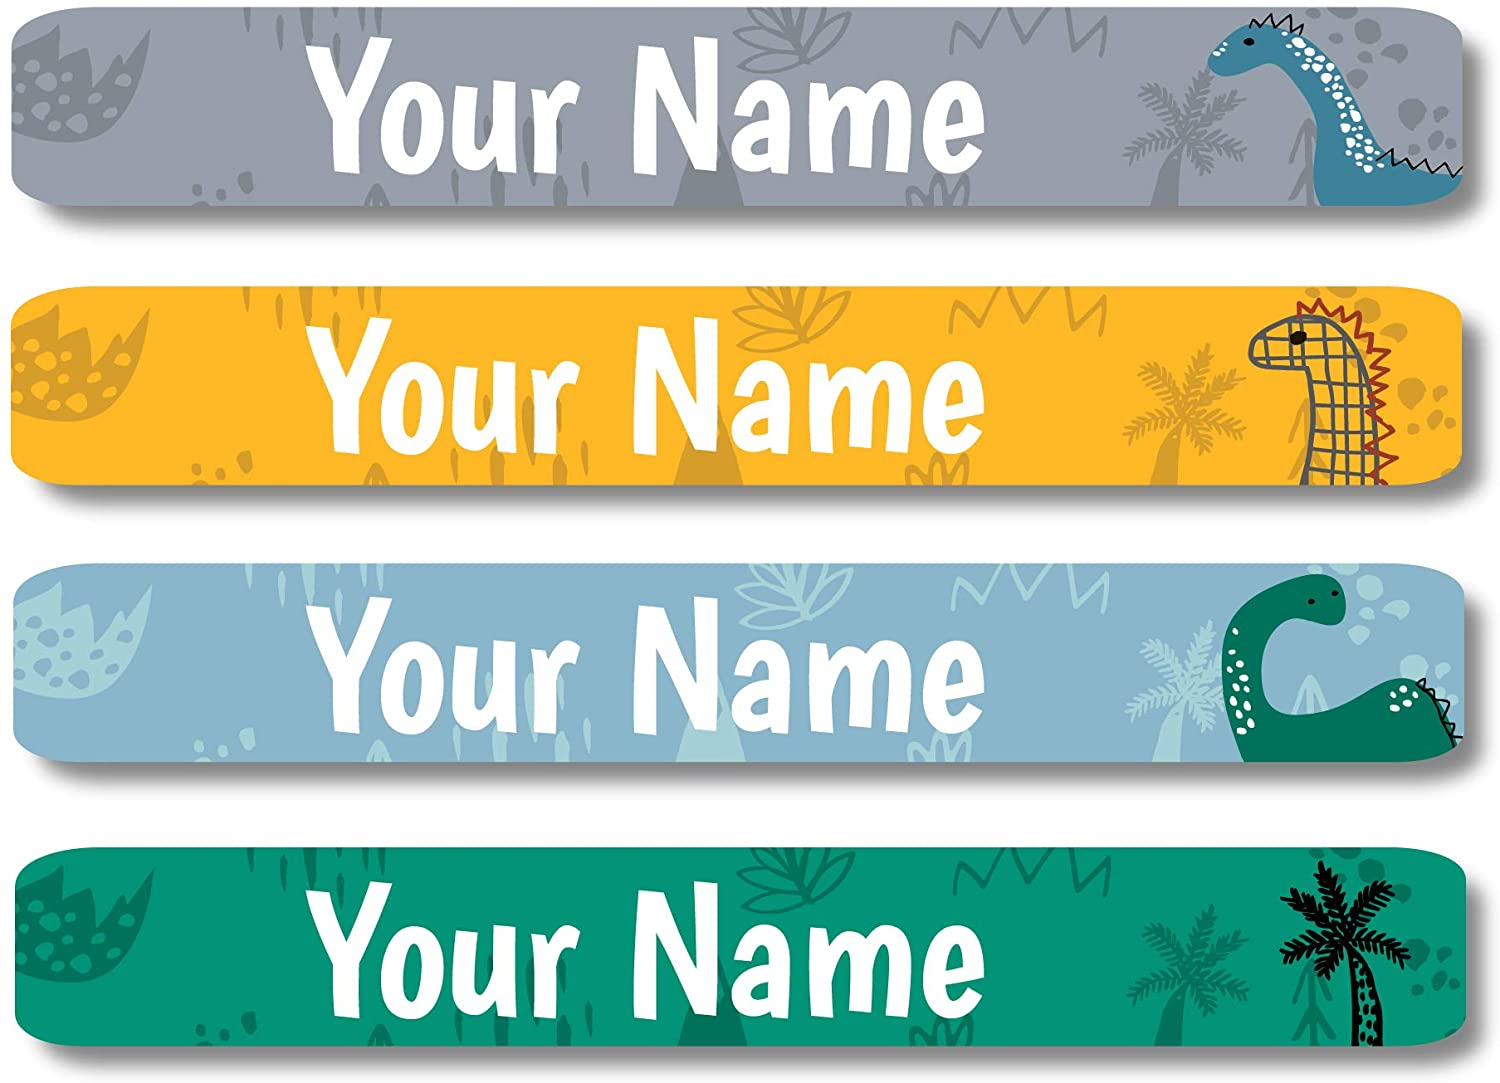 Lovable Labels Personalized Labels for Kids (120 Labels) - Waterproof Dishwasher Safe Peel and Stick Labels are Great for School Supplies Daycare Camp Clothing Bottles (Little Foot)